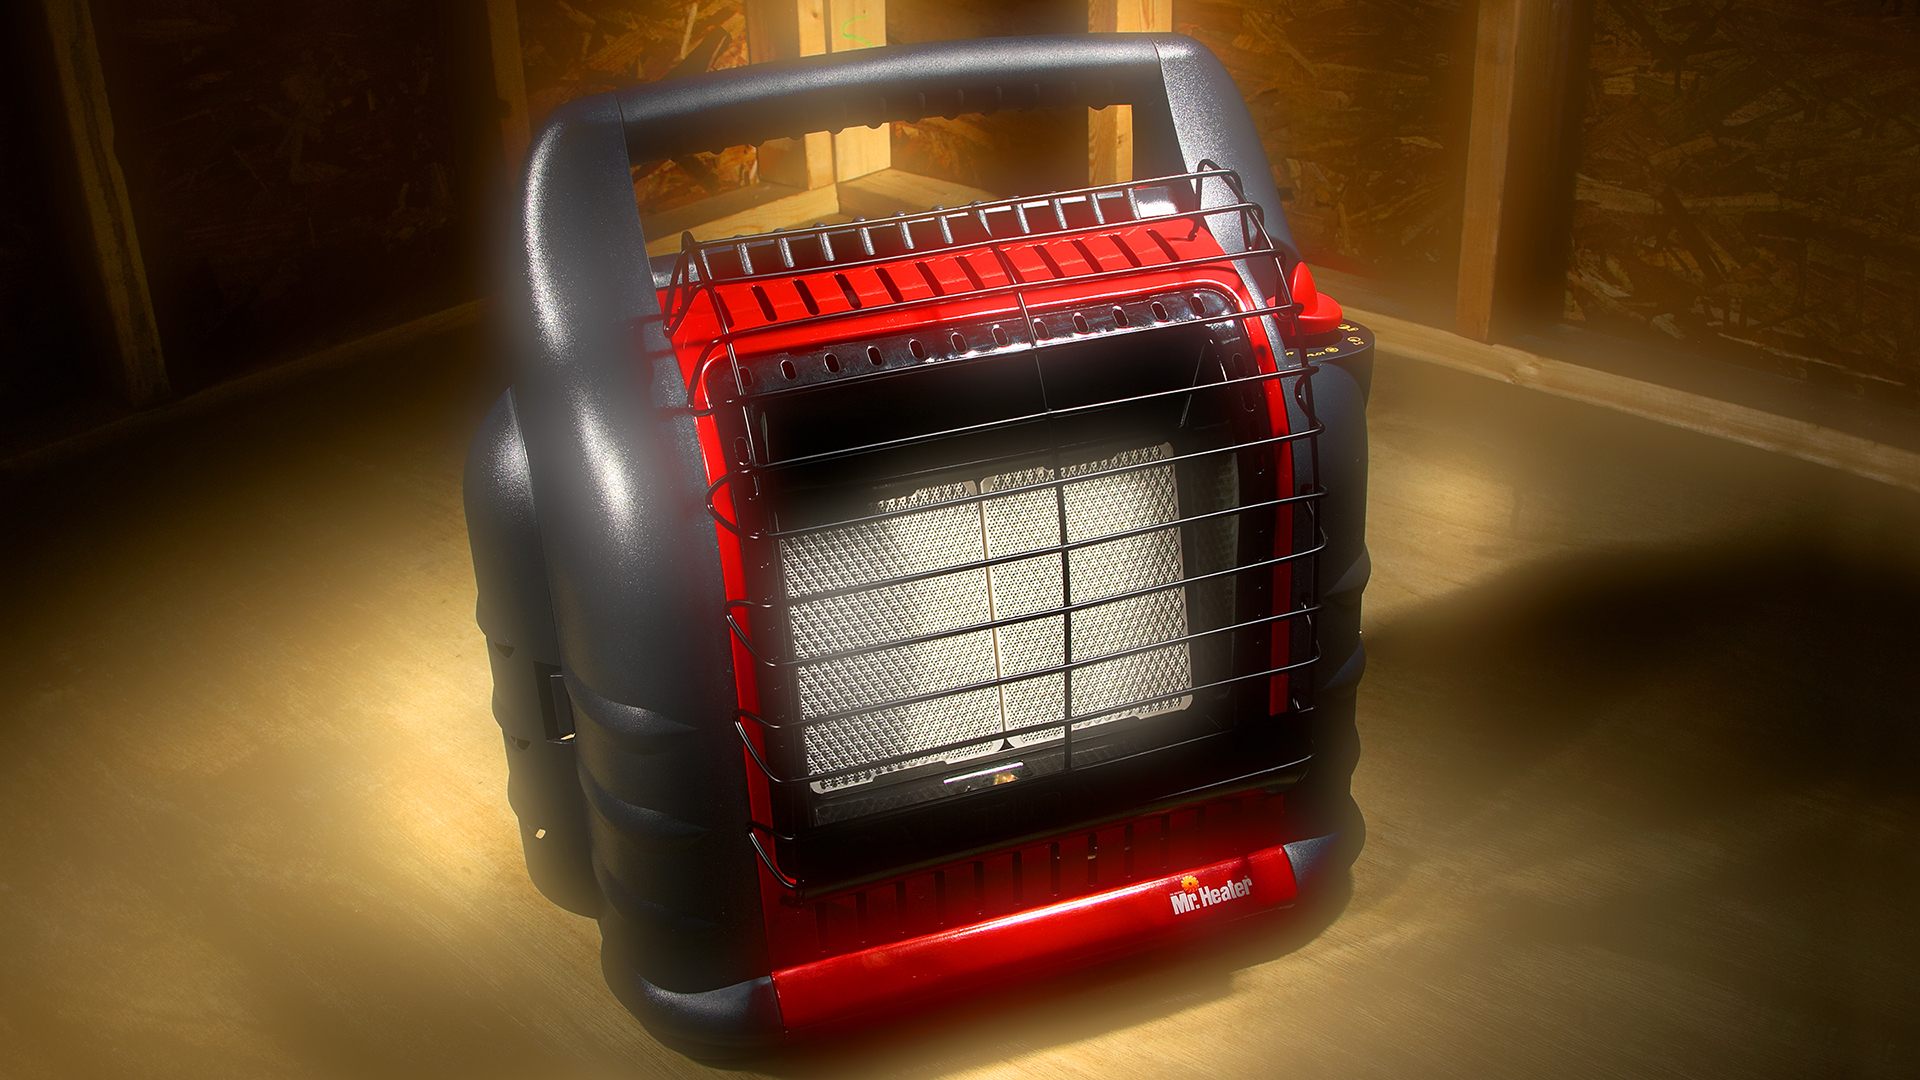 priority_designs_portable_propane_heater_design_and_engineering_004